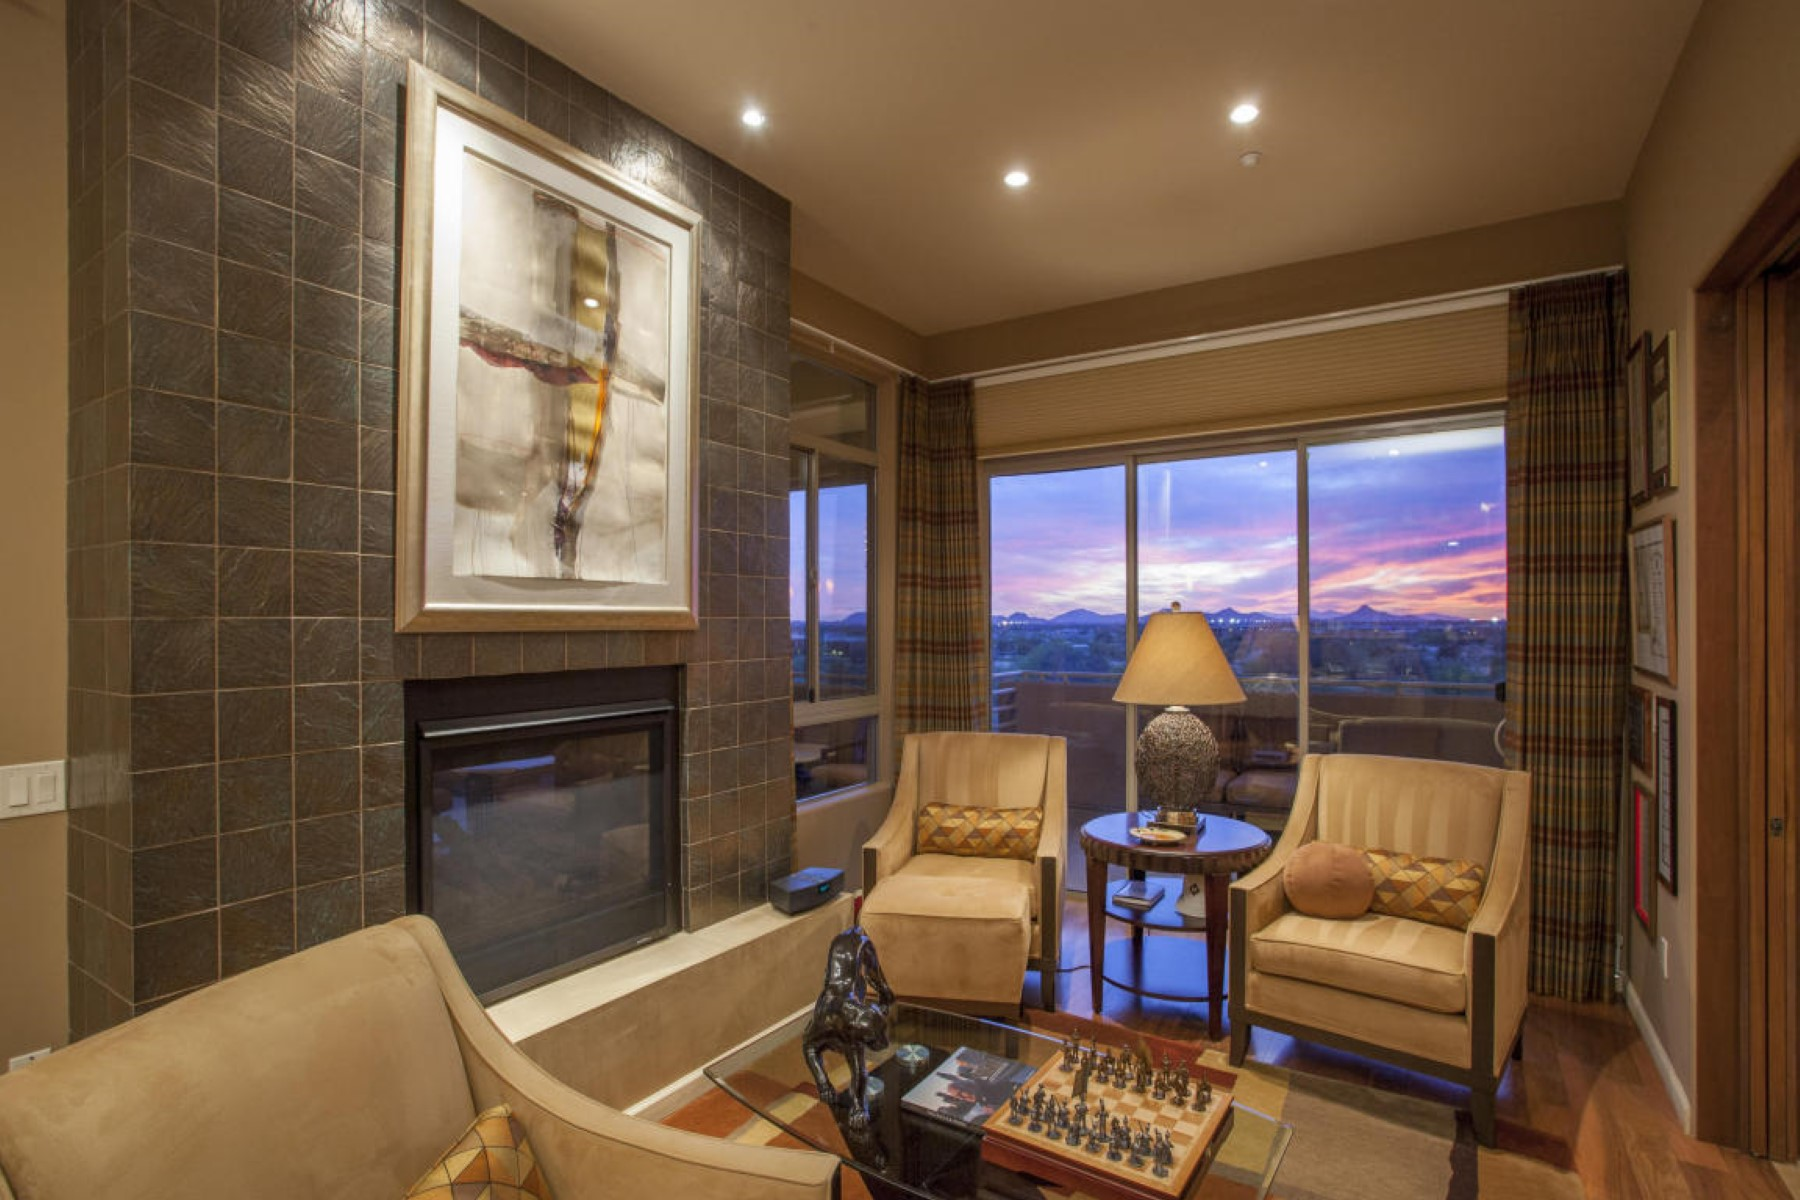 Single Family Home for Sale at One of a kind penthouse is unlike any other in the heart of Scottsdale 15802 N 71 ST 651 Scottsdale, Arizona 85254 United States